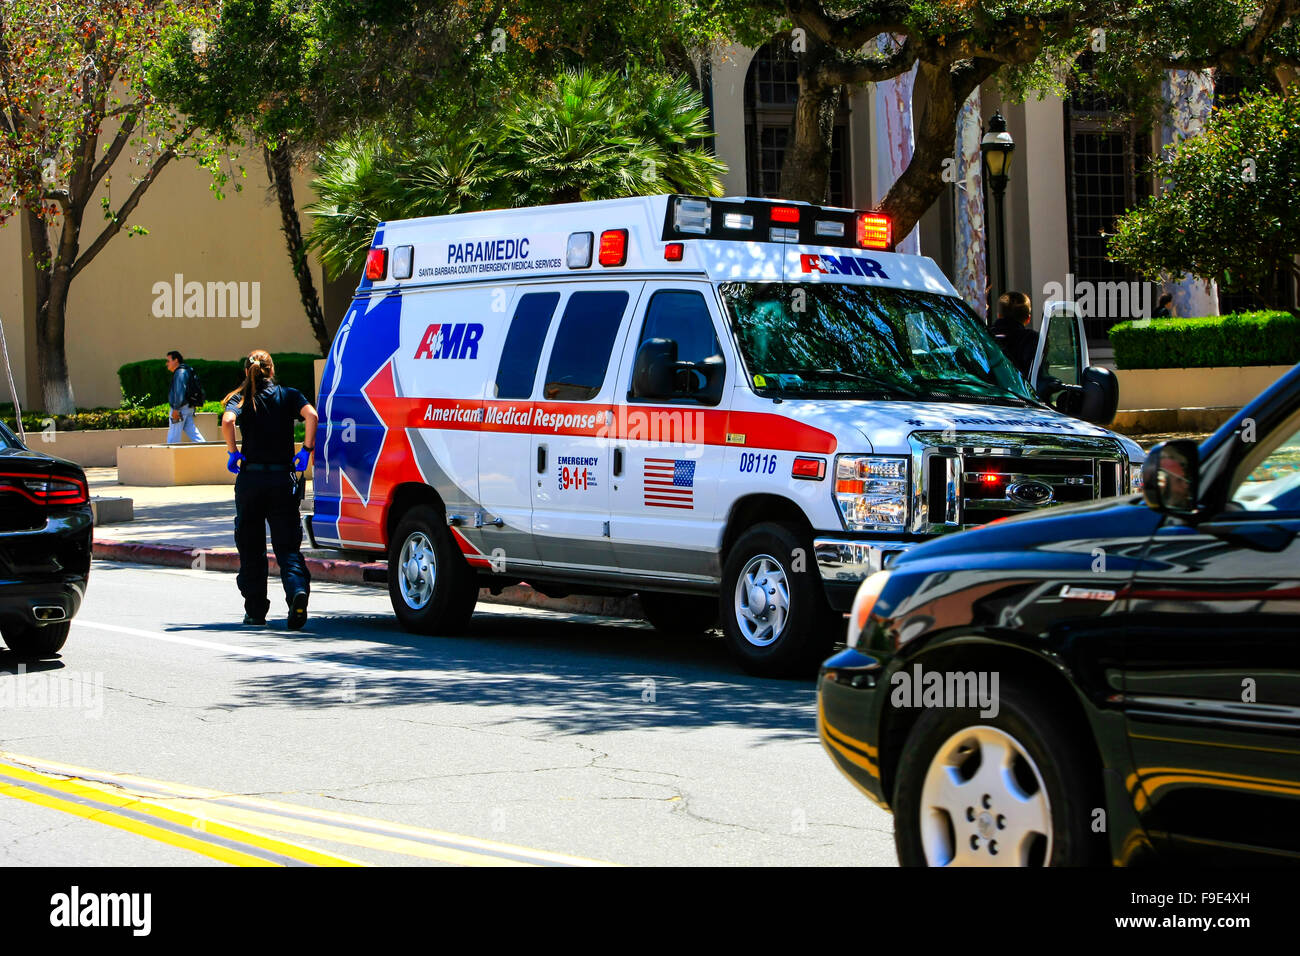 EMT vehicle at the roadside attending a call out in downtown Santa Barbara, California - Stock Image